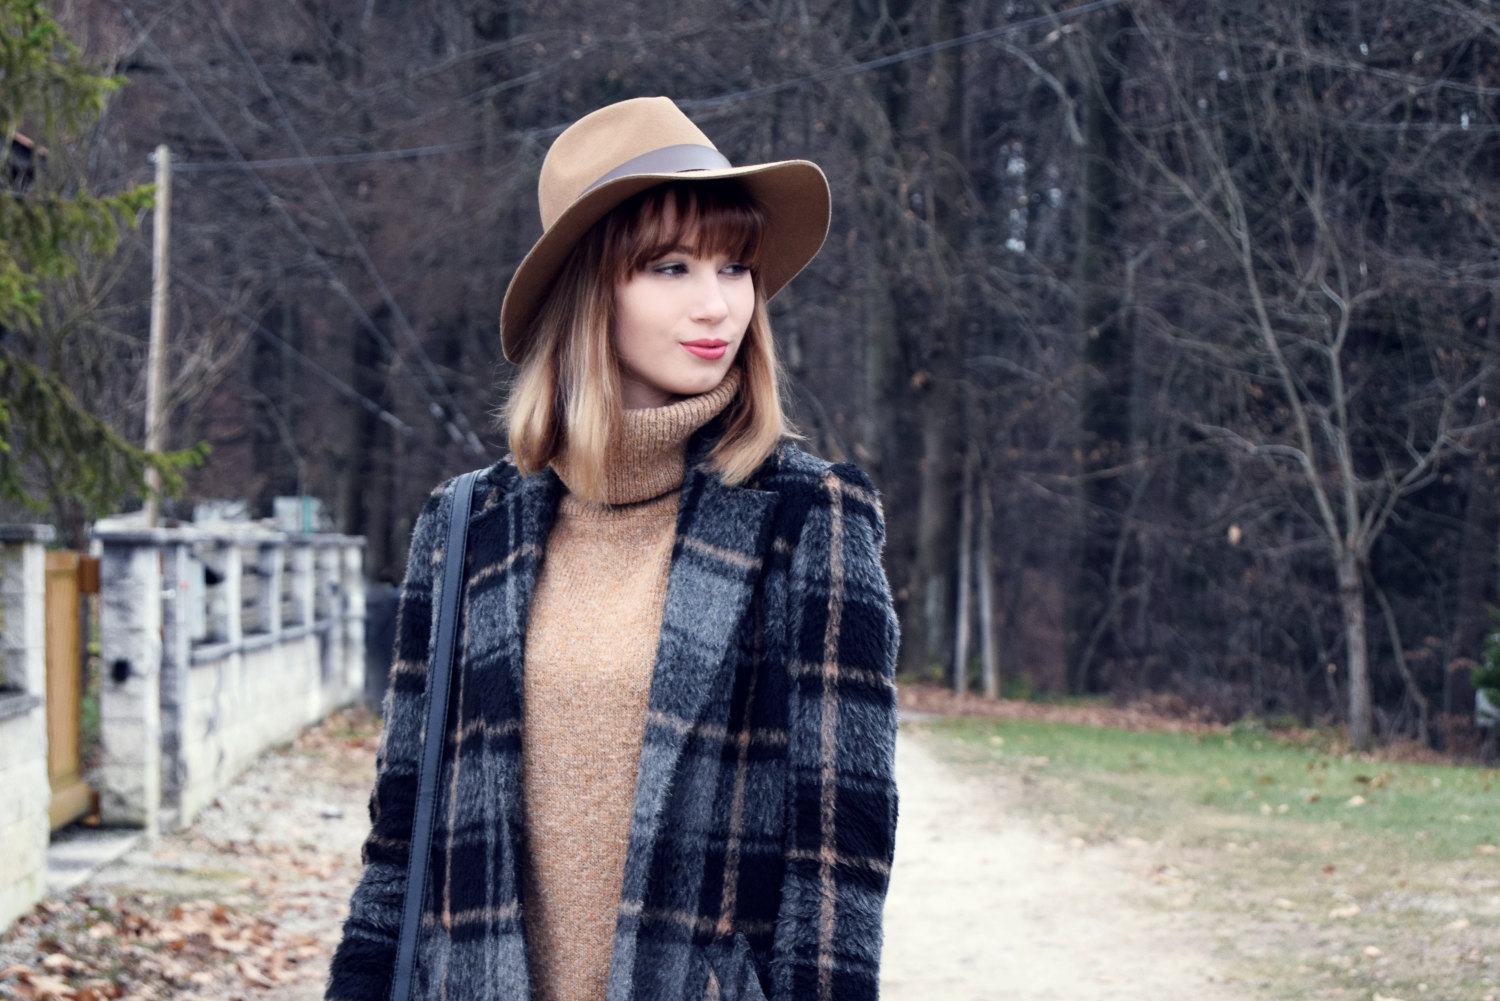 zalabell_fashion_december_winter_style_7